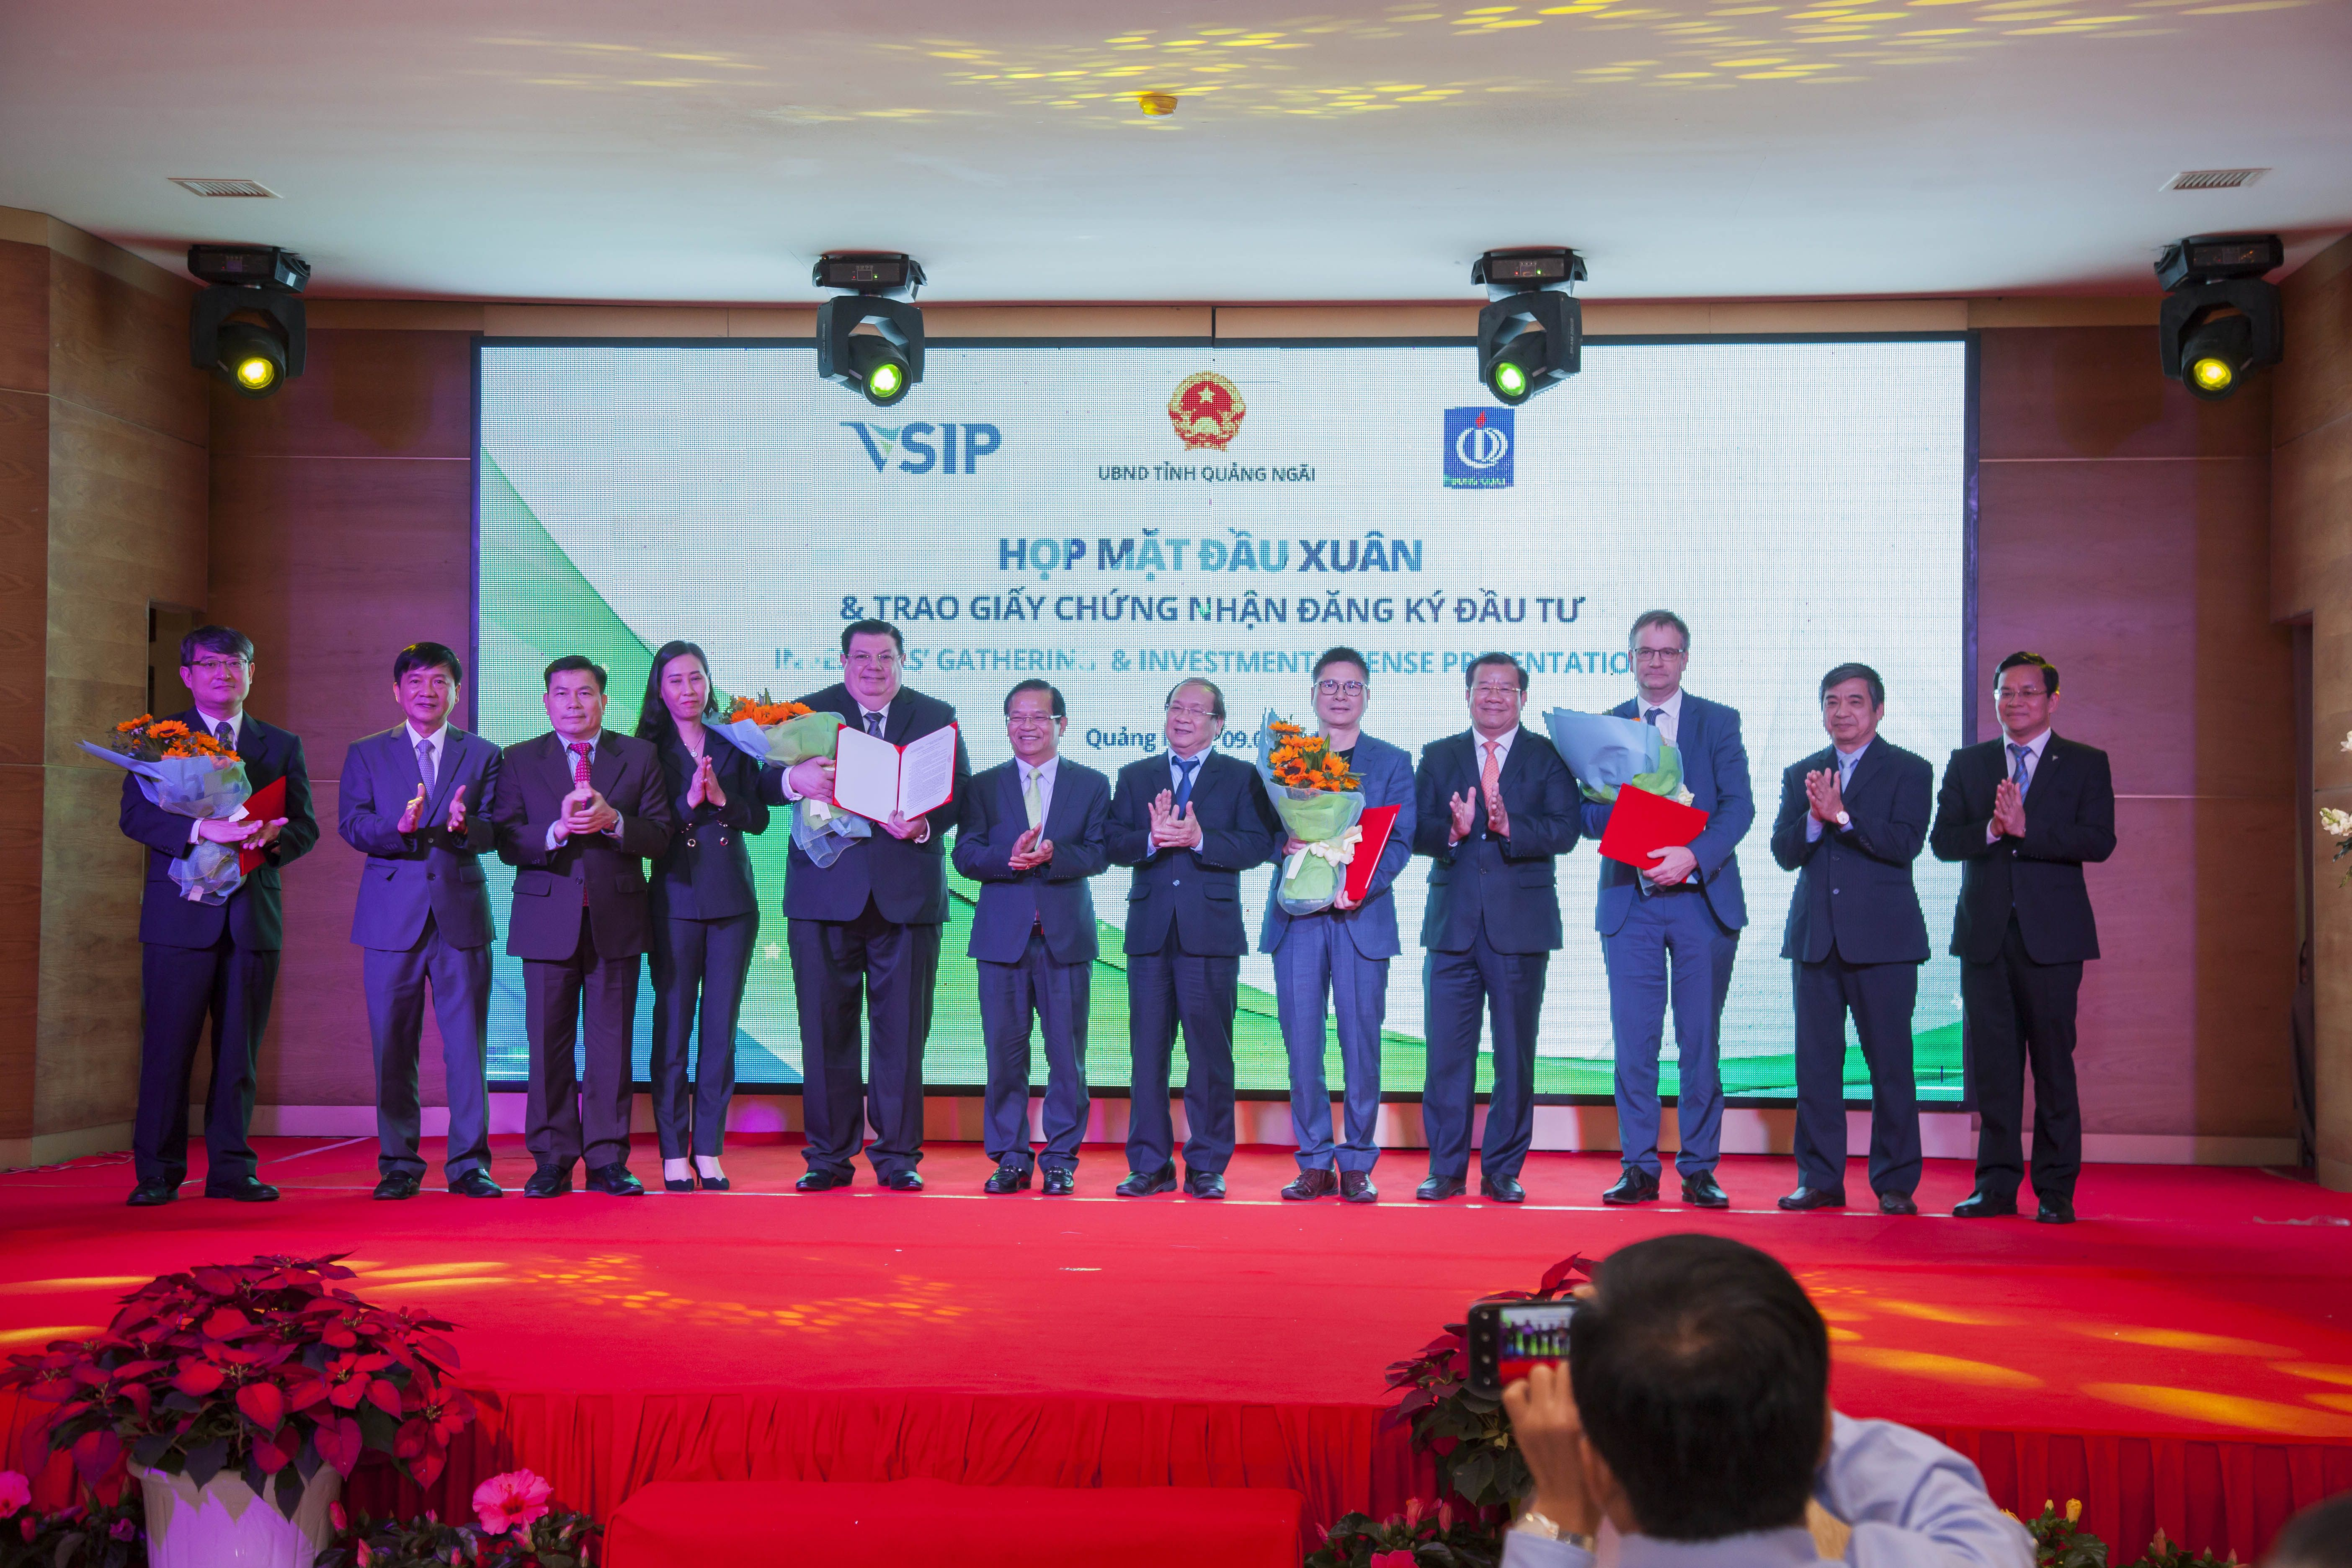 US$321 MILLION OF NEW FOREIGN INVESTMENT IN VSIP QUANG NGAI